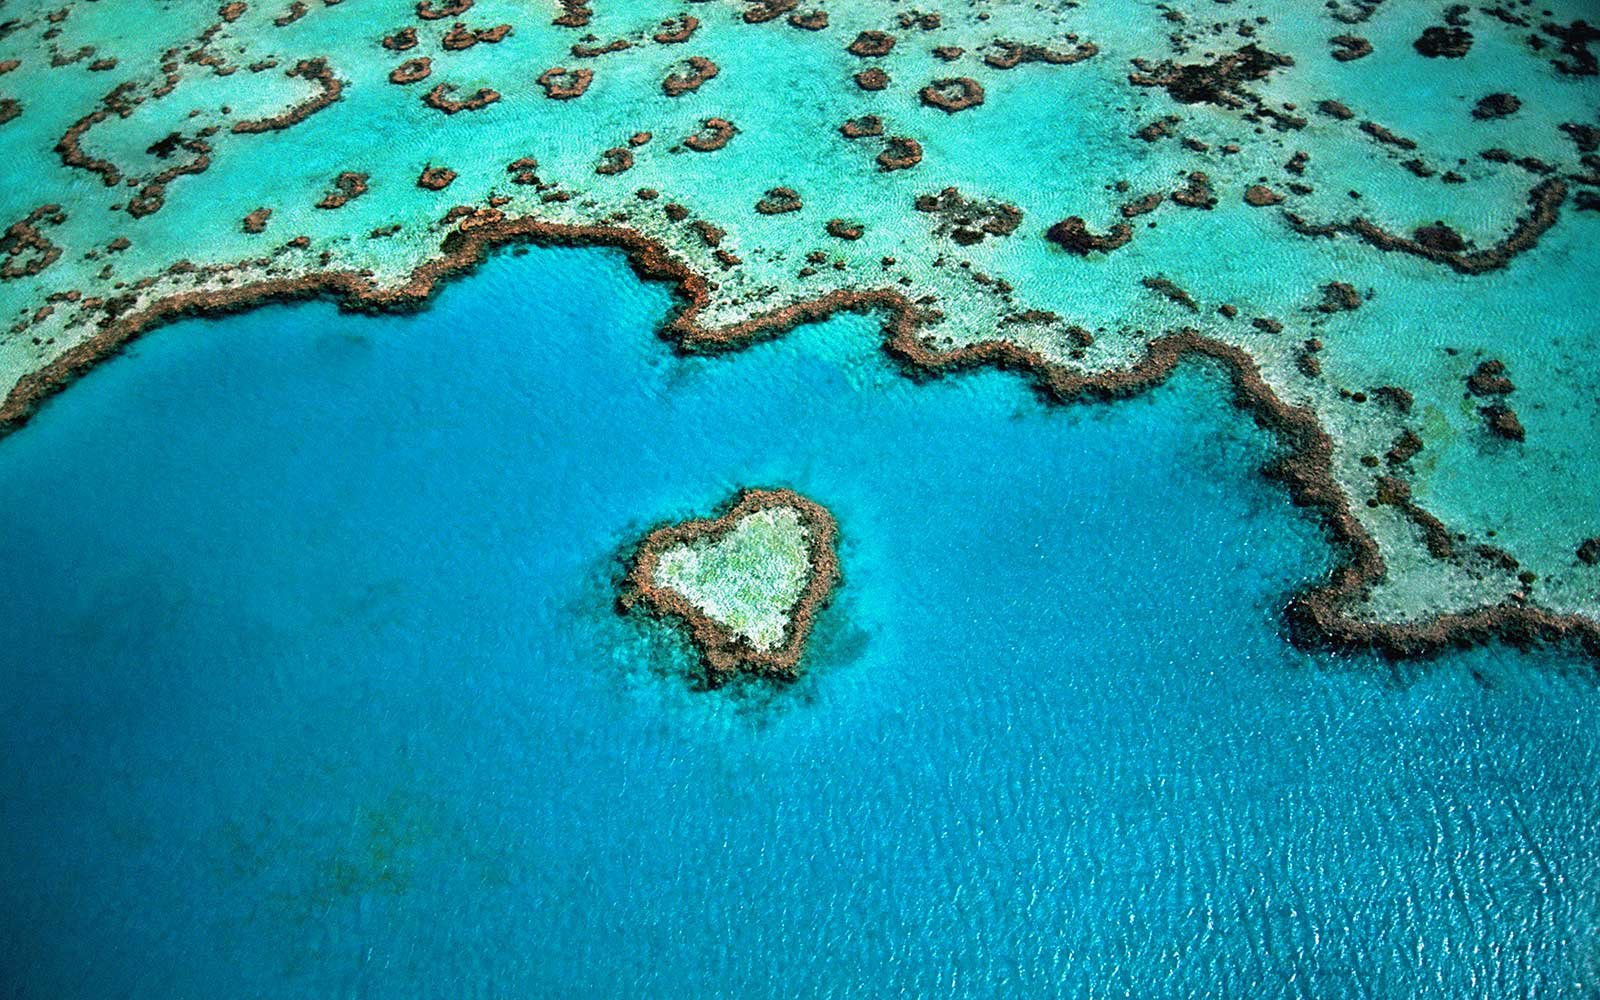 Heart shaped natural wonders around the world